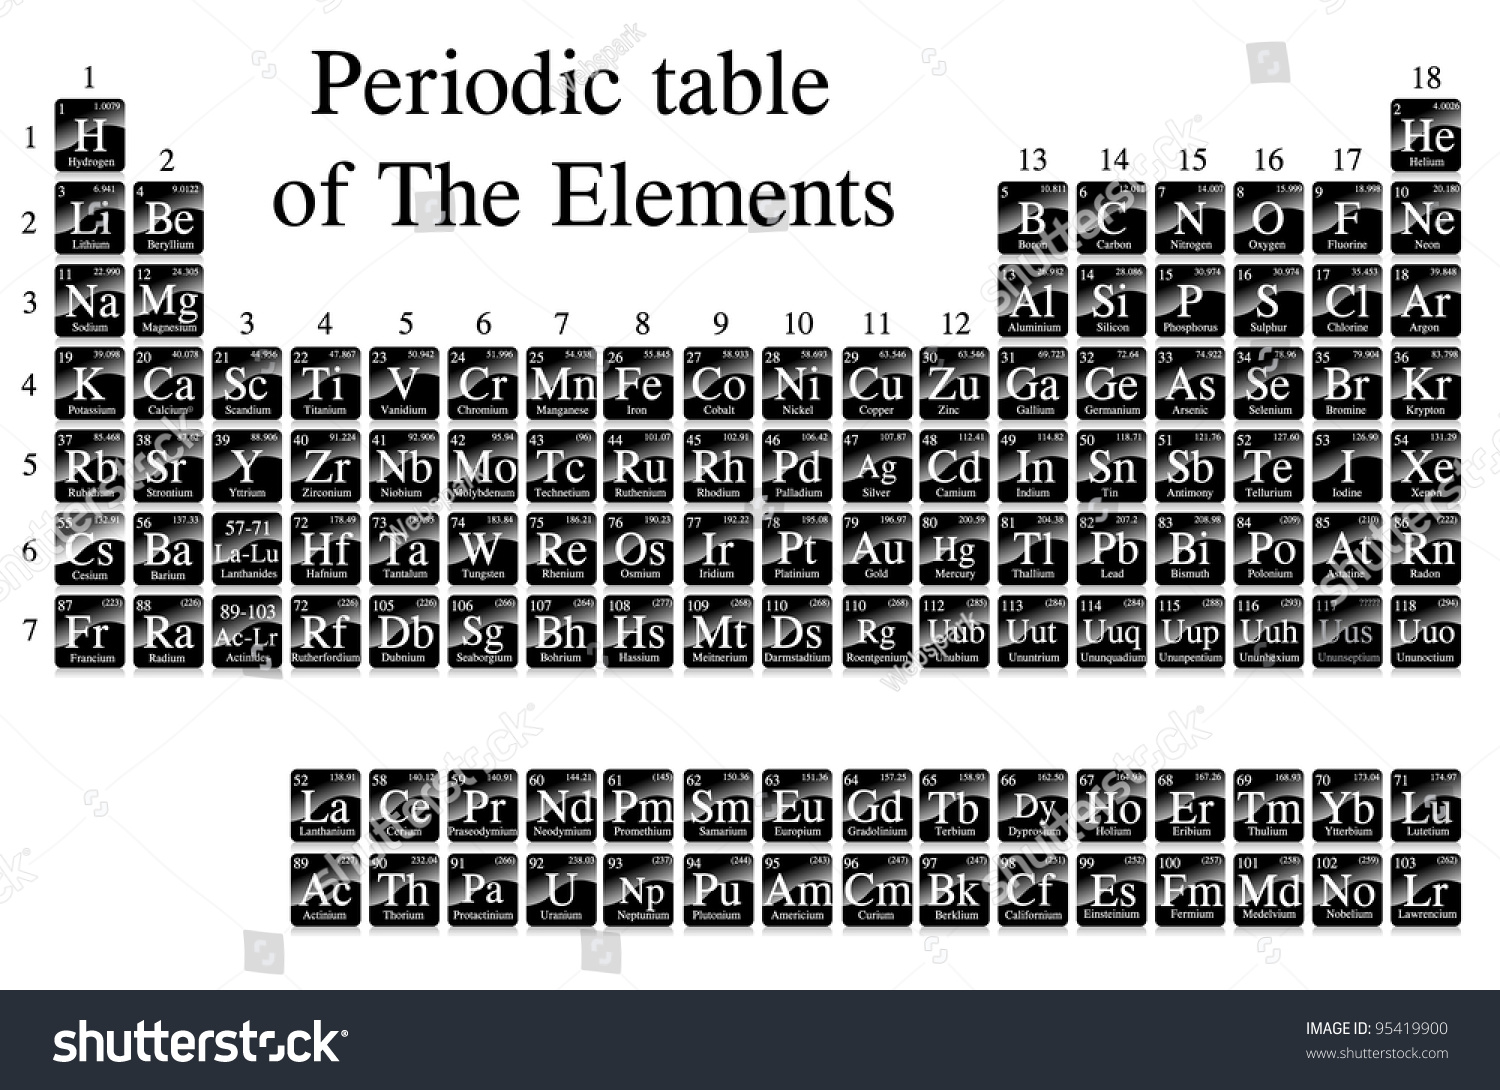 Periodic table of elements stock vector illustration - Periodic table of html elements ...